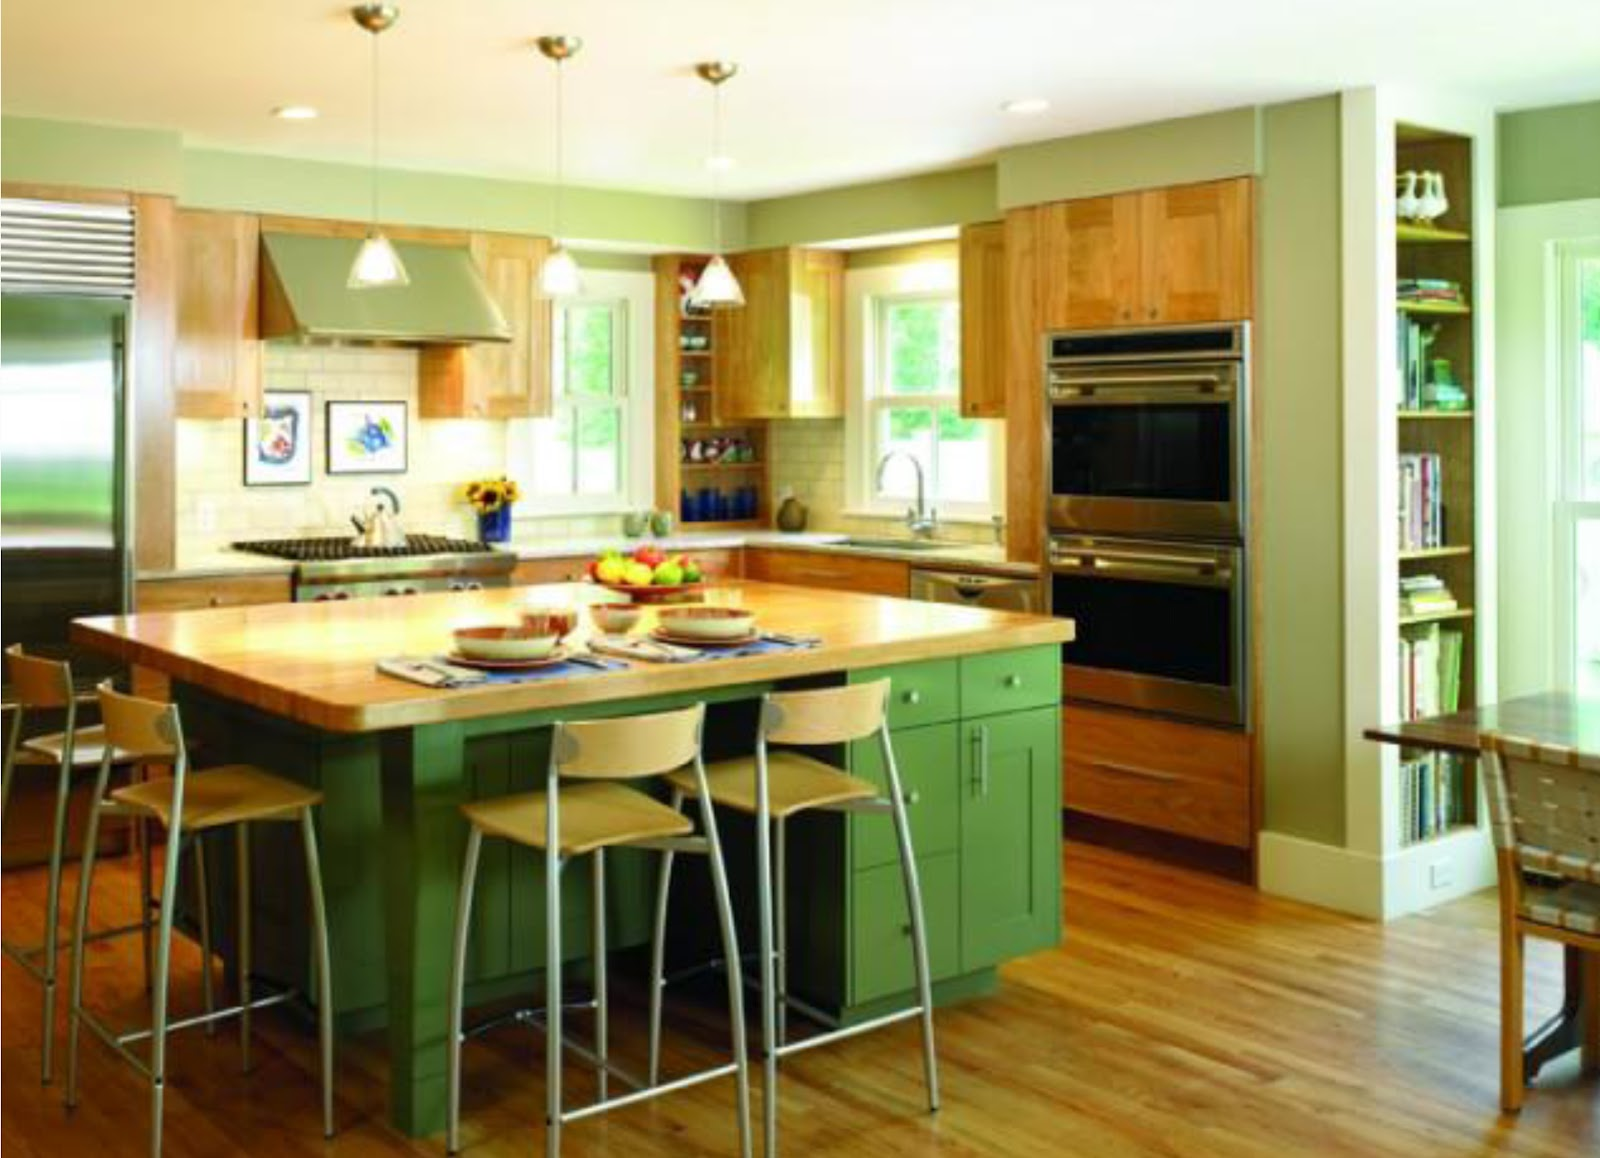 Lshaped Kitchen with Island